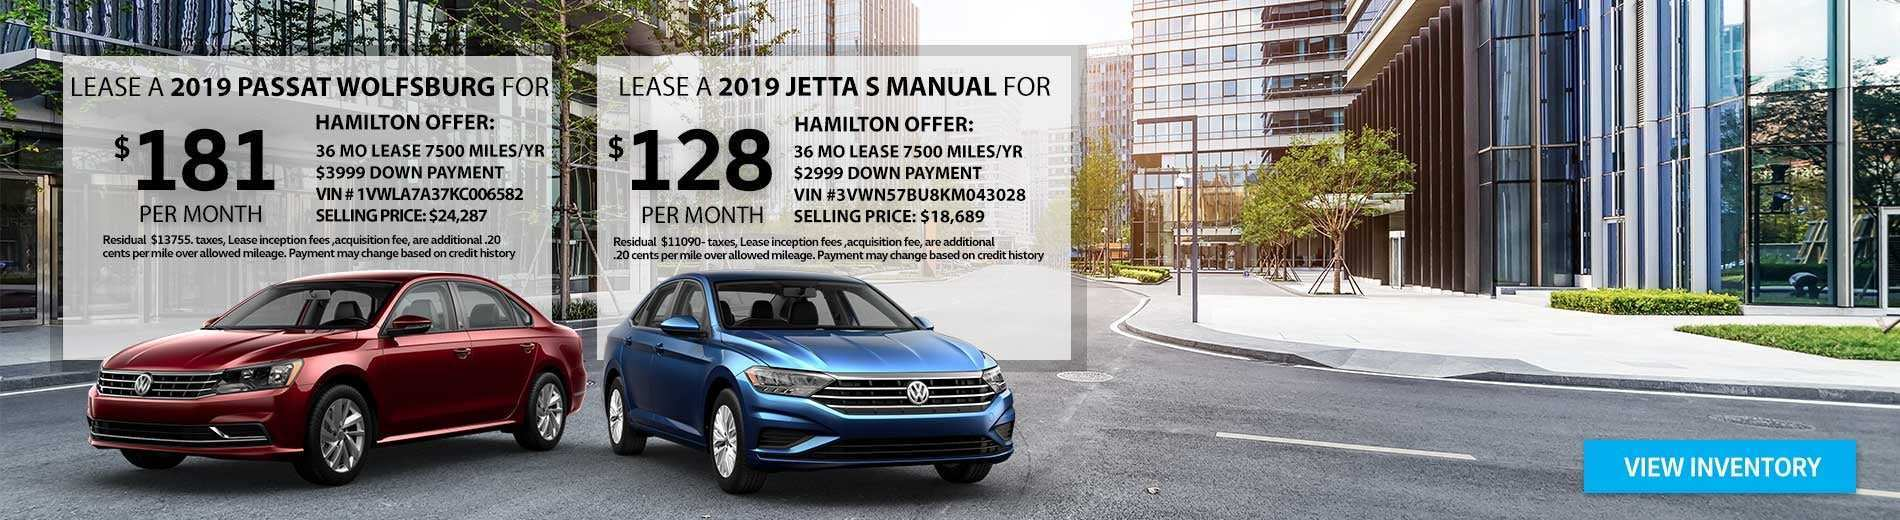 90 A Volkswagen Pay In 2020 Offer New Review